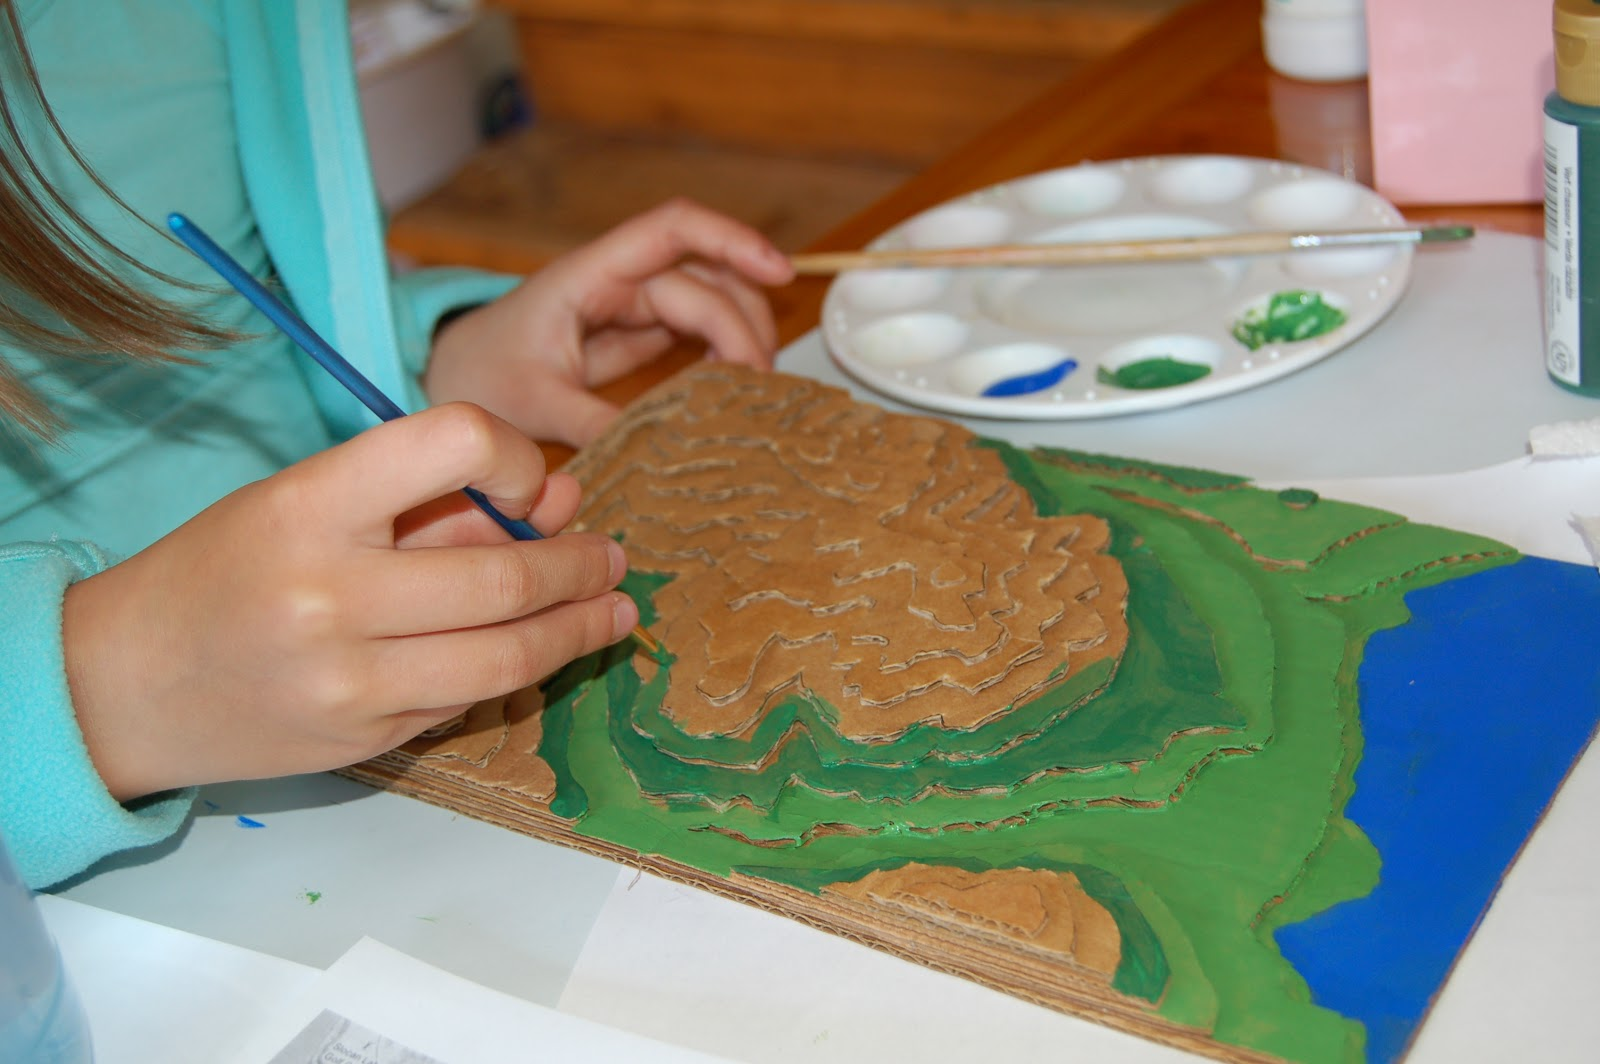 How To Make A 3d Topographic Map.We Live Here 3d Nurtured By Love